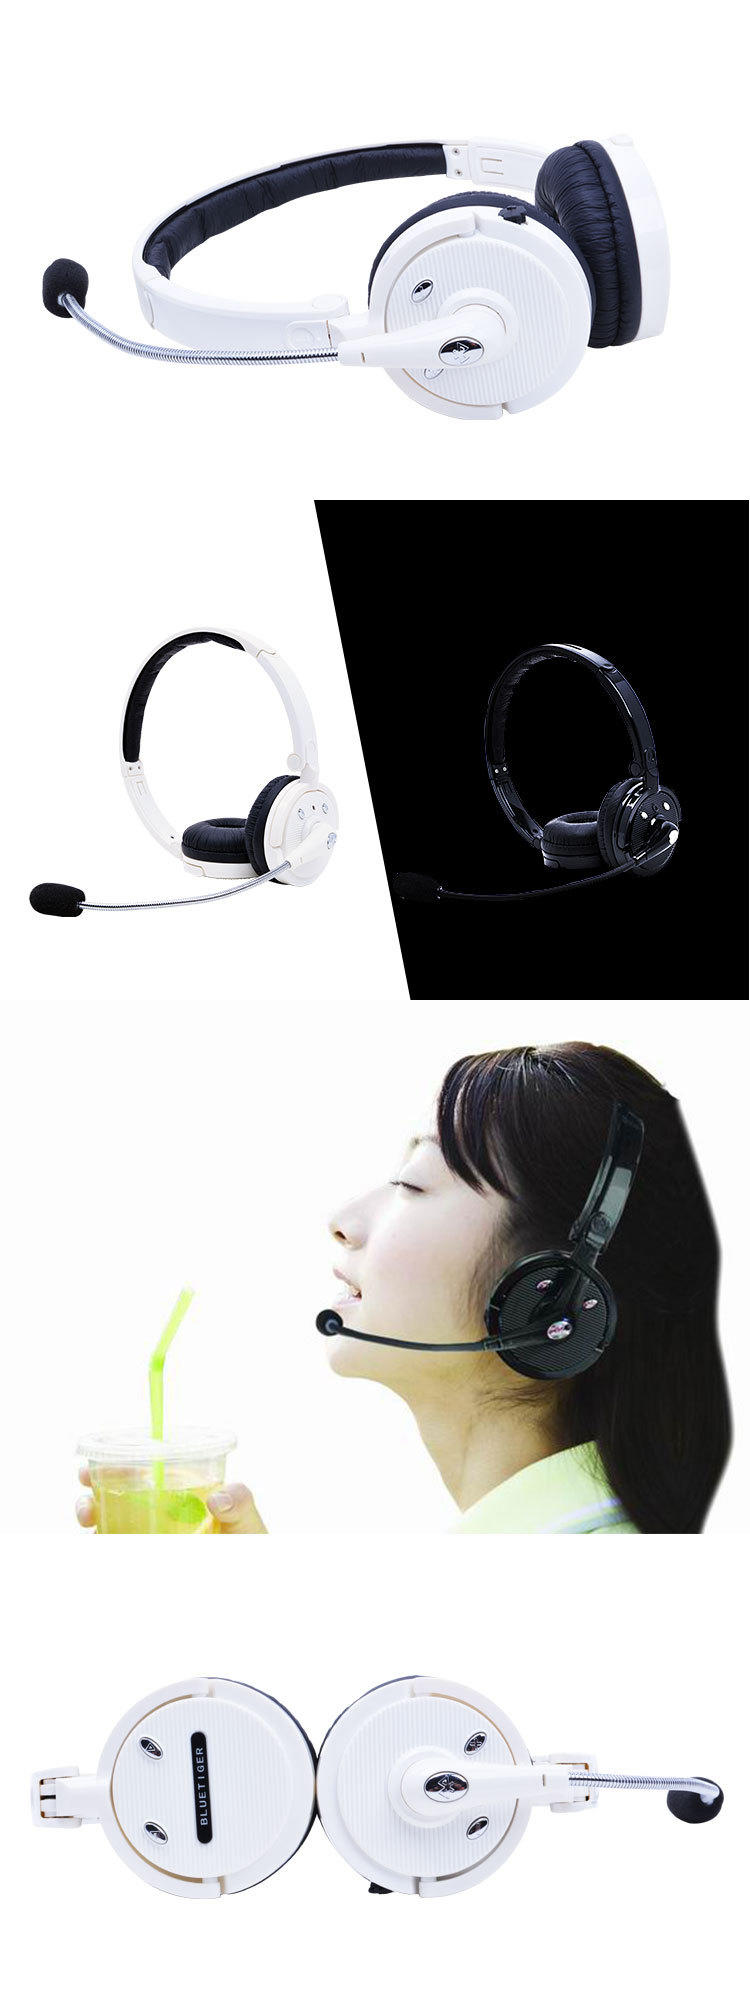 superior wireless headphone design  manufacturer for sports